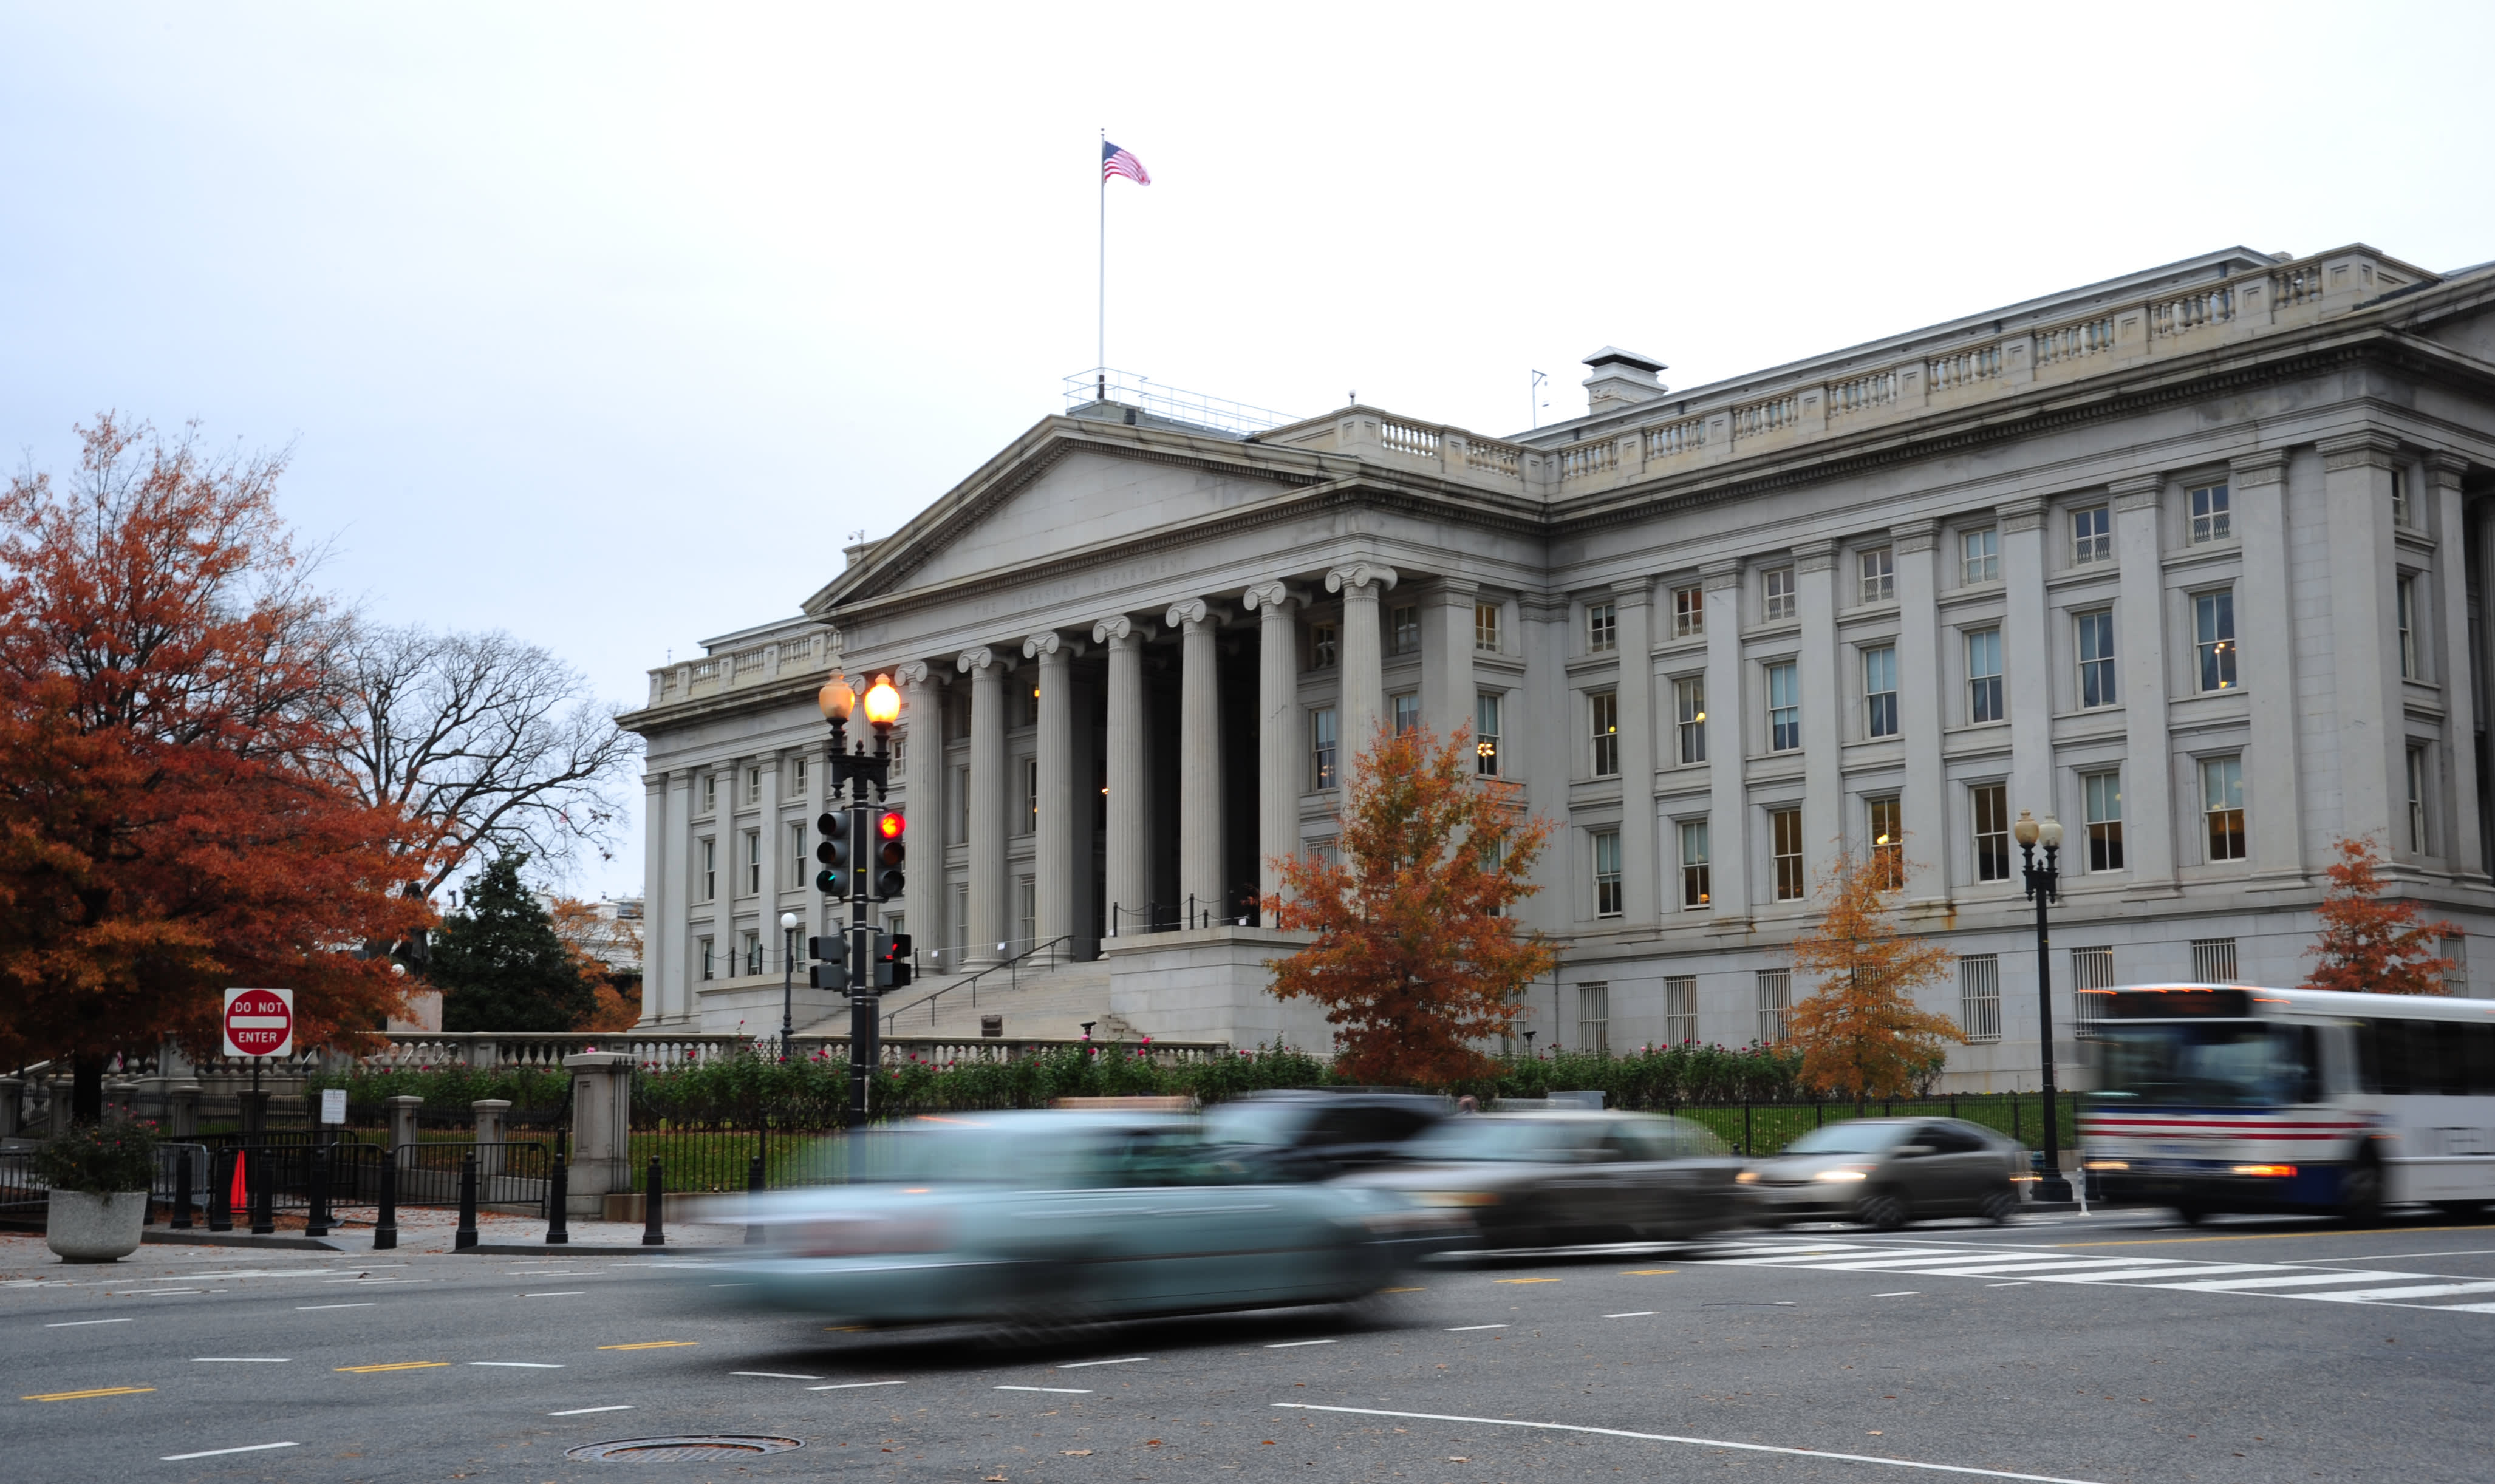 US Budget Deficit Jumps to Record $1.7 Trillion This Year Due to Rescue Packages